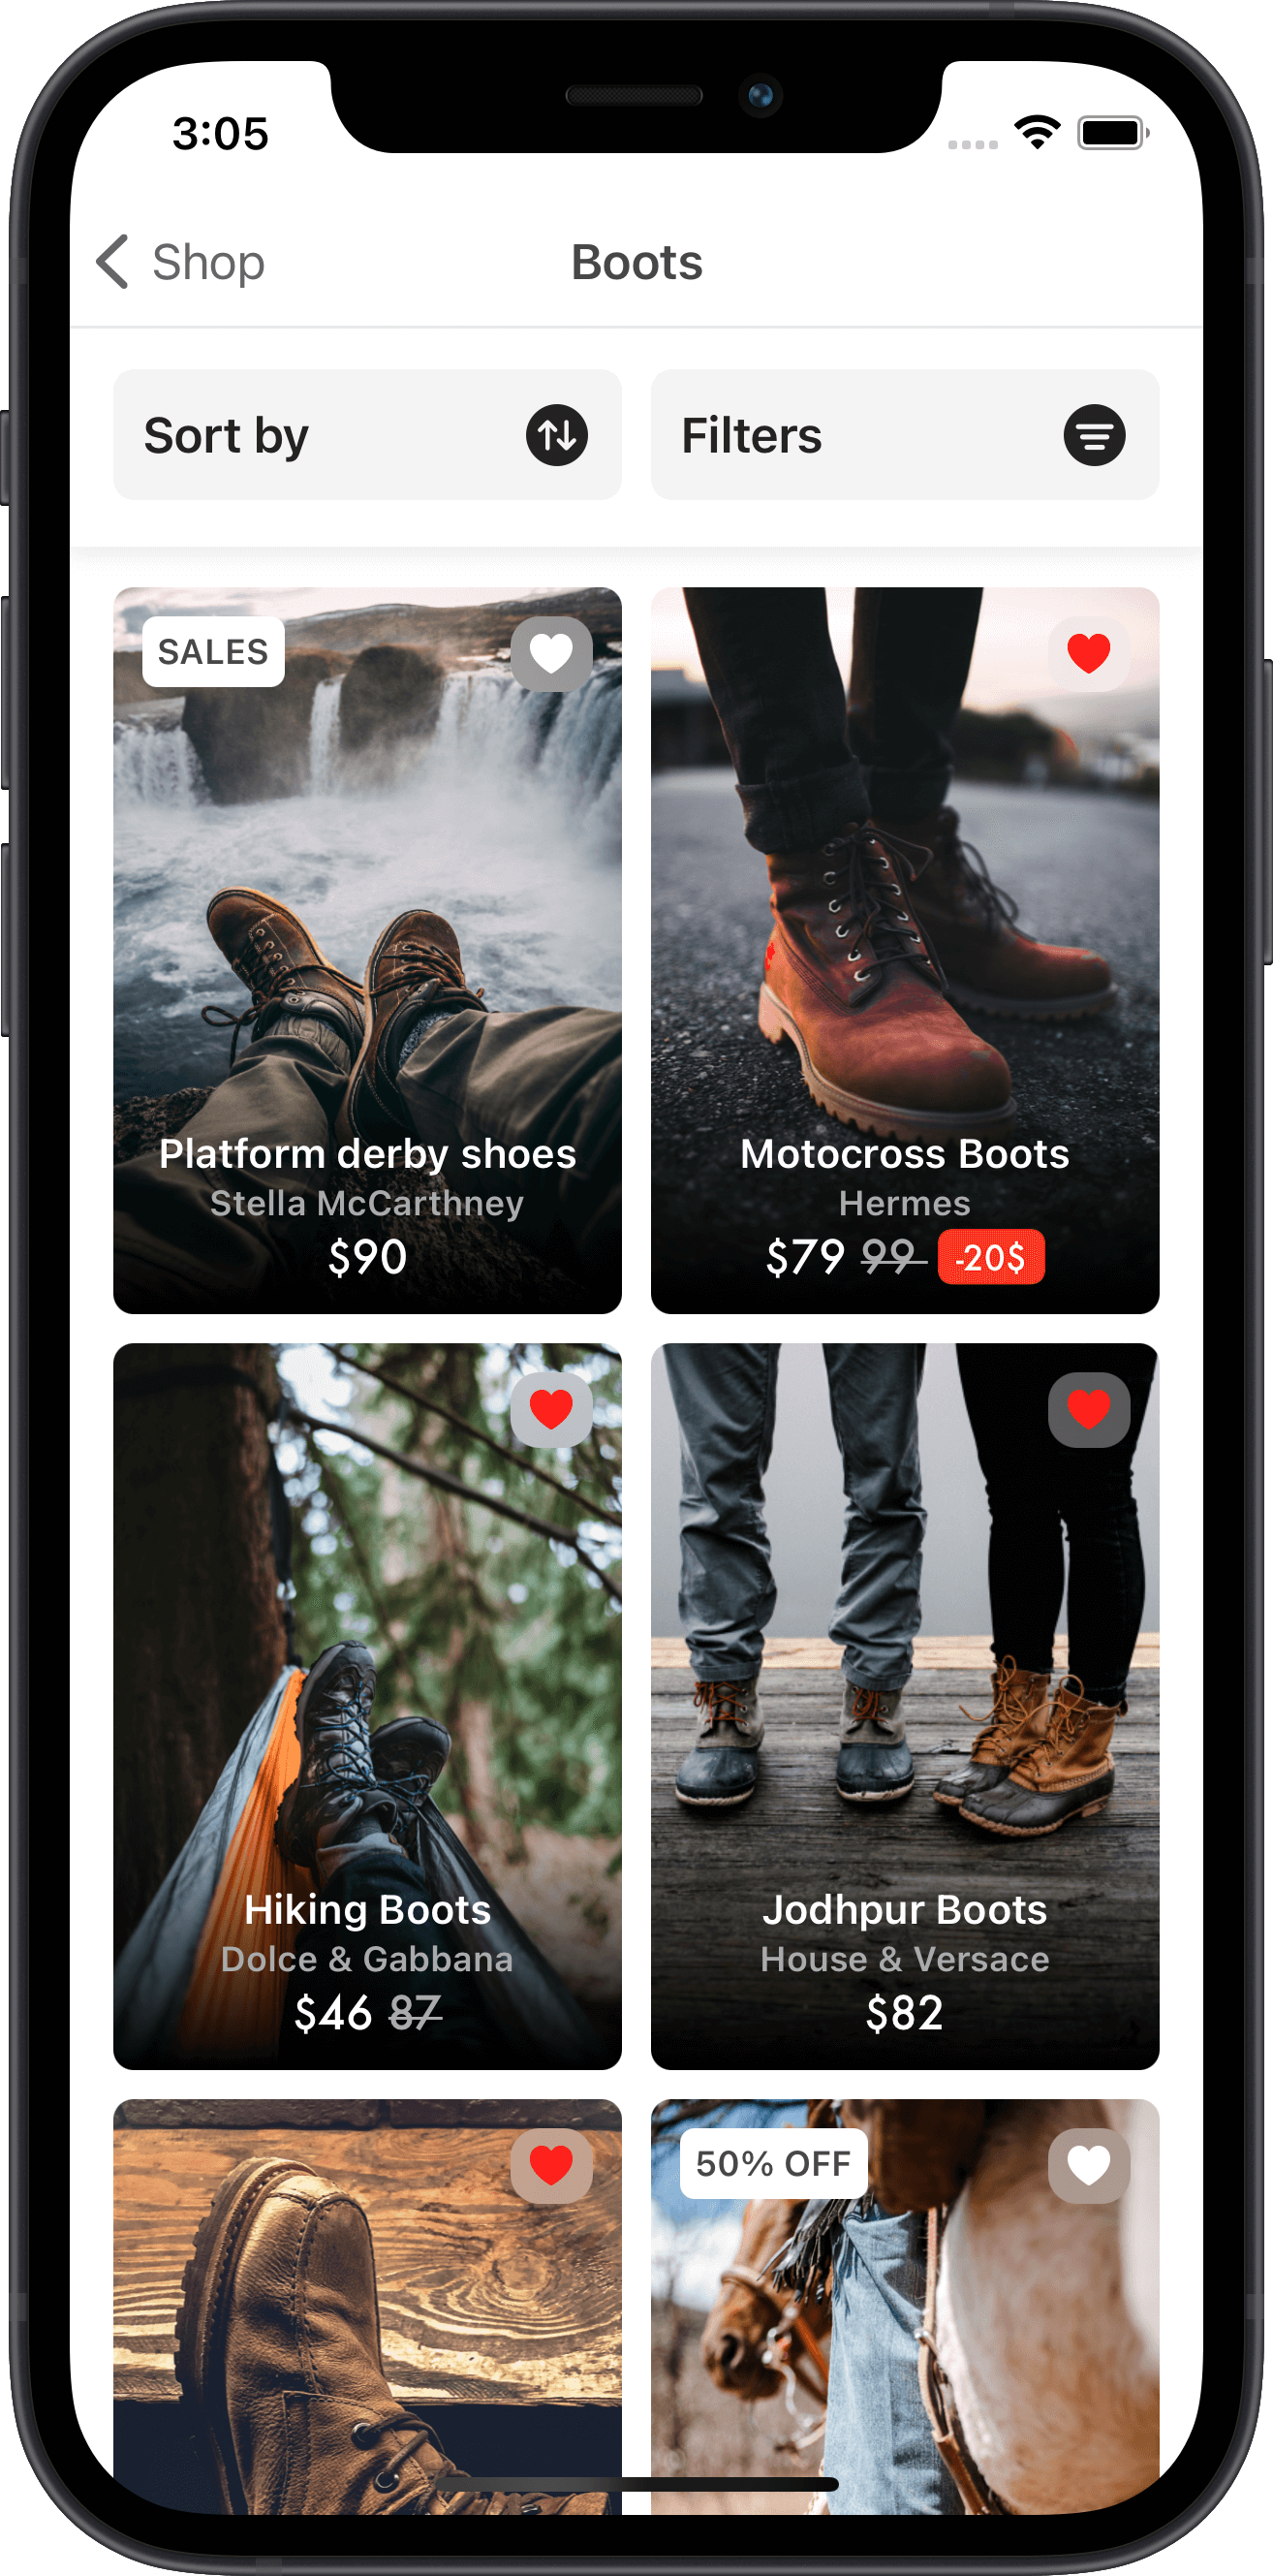 e-commerce, products, boots